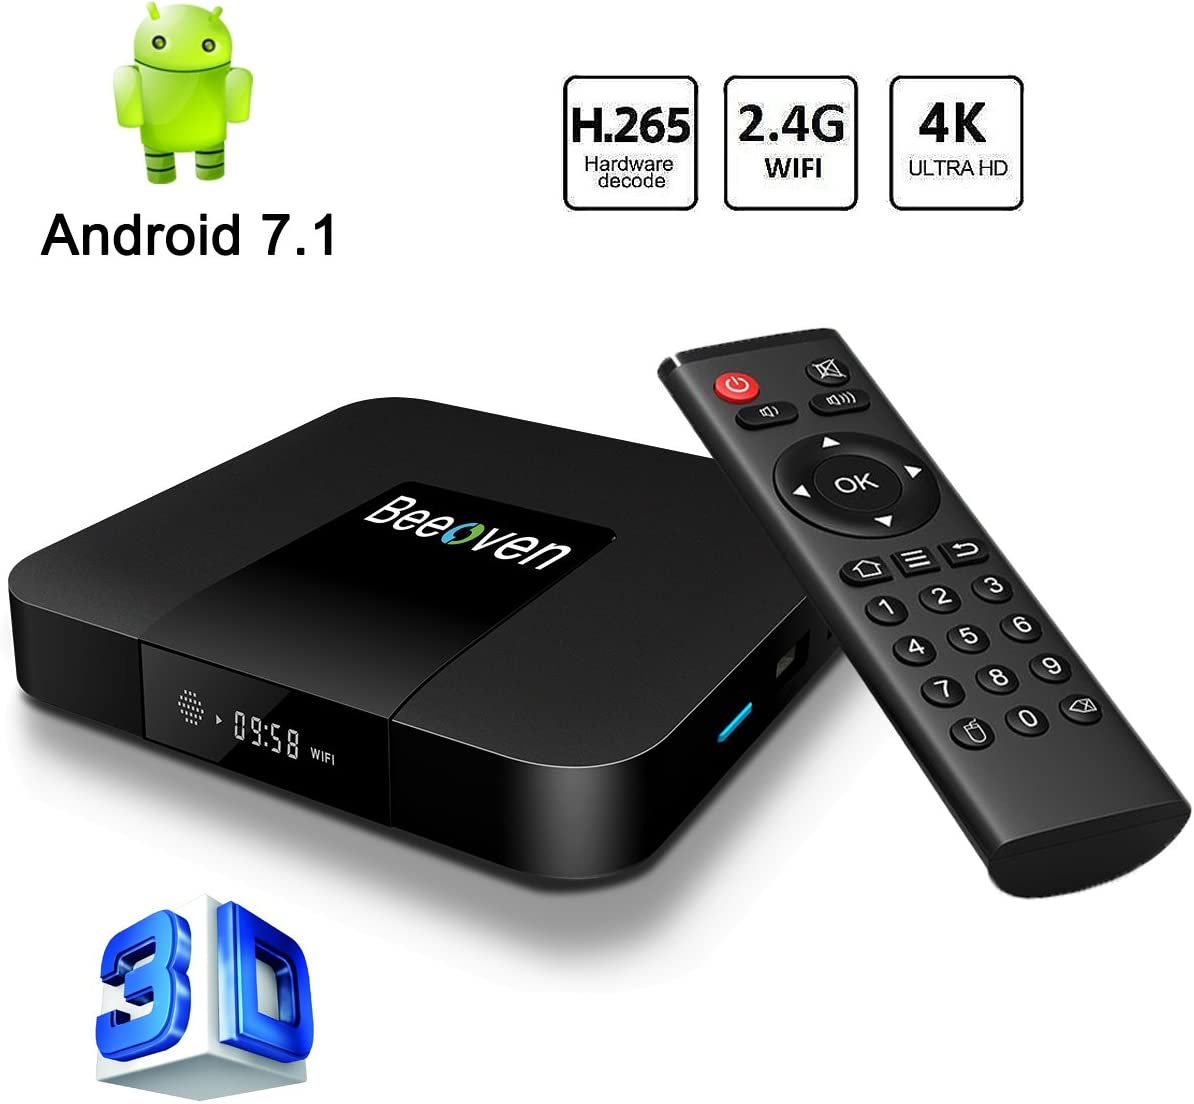 Beeoven Android TV Box 1 GB 8 GB Android 7.1 Nougat Amlogic 2.0 GHz Quad-core 4K Smart TV Box: Amazon.es: Electrónica